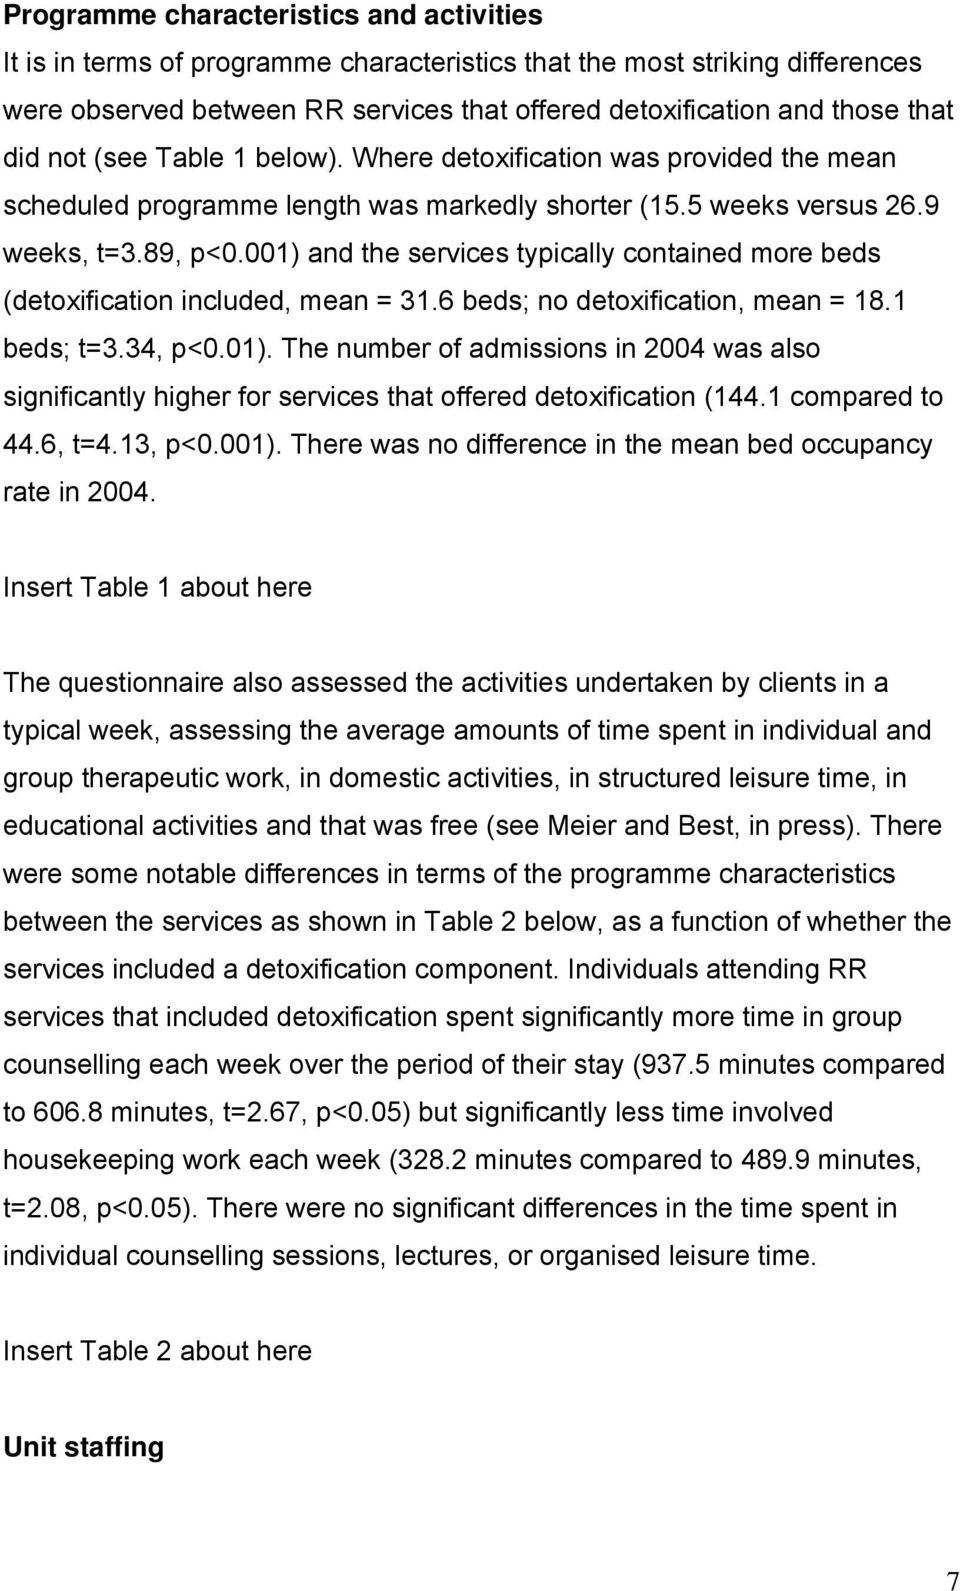 001) and the services typically contained more beds (detoxification included, mean = 31.6 beds; no detoxification, mean = 18.1 beds; t=3.34, p<0.01). The number of admissions in 2004 was also significantly higher for services that offered detoxification (144.